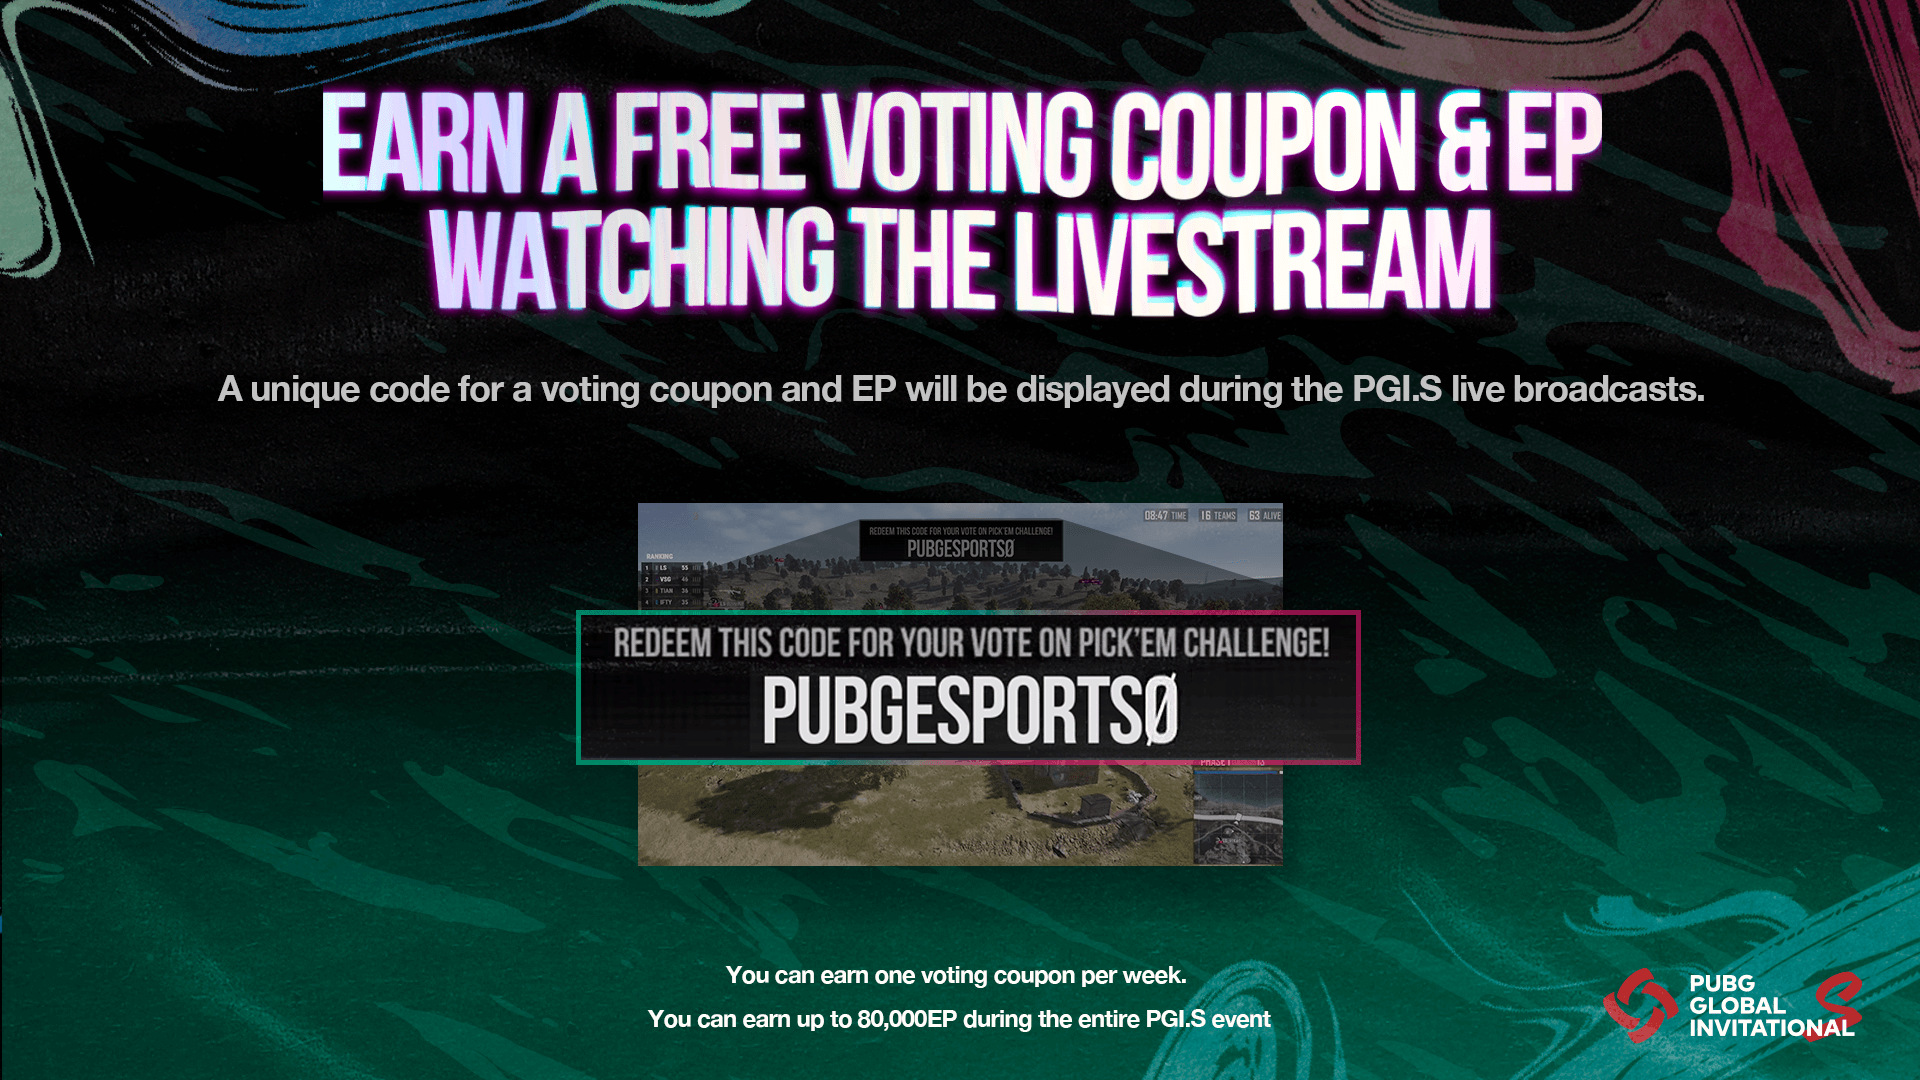 A-FREE-VOTING-COUPON-IN-LIVESTREAM_2 (2).png